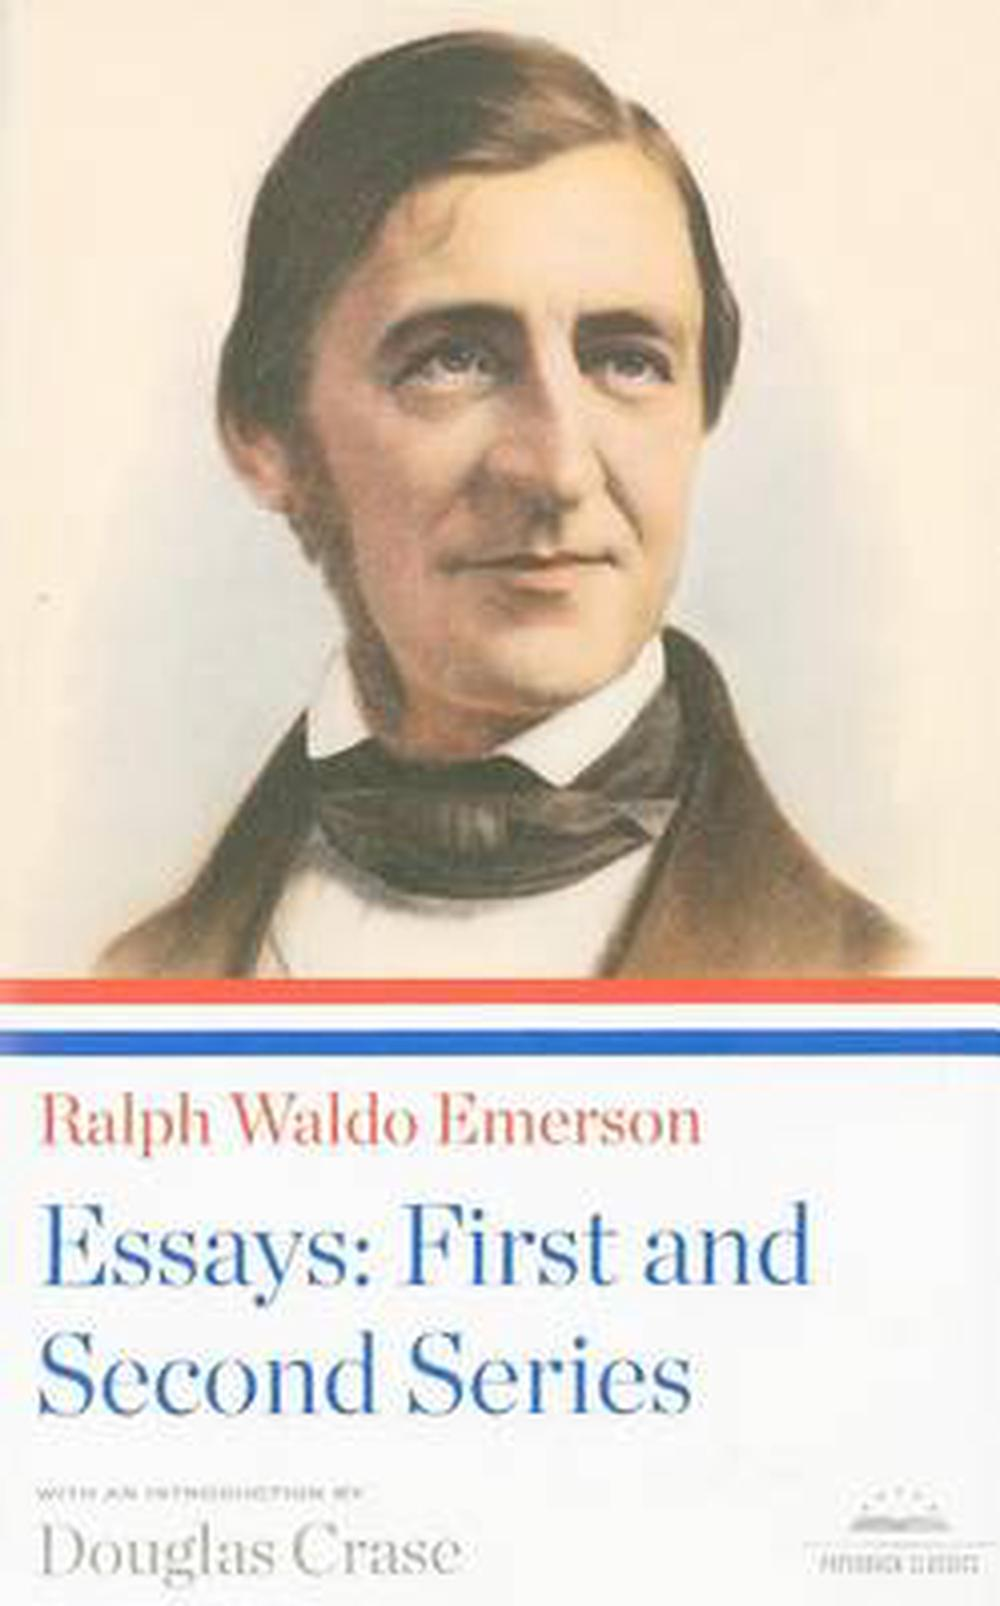 essays by emerson second series Ralph waldo emerson is considered by some to be a crackpot, and by others to be a near genius - somewhere in the middle, i am sure his true importance lies he was an early american philosopher, thinker, and teacher, who wrote lectures, commentaries and poems throughout his life.